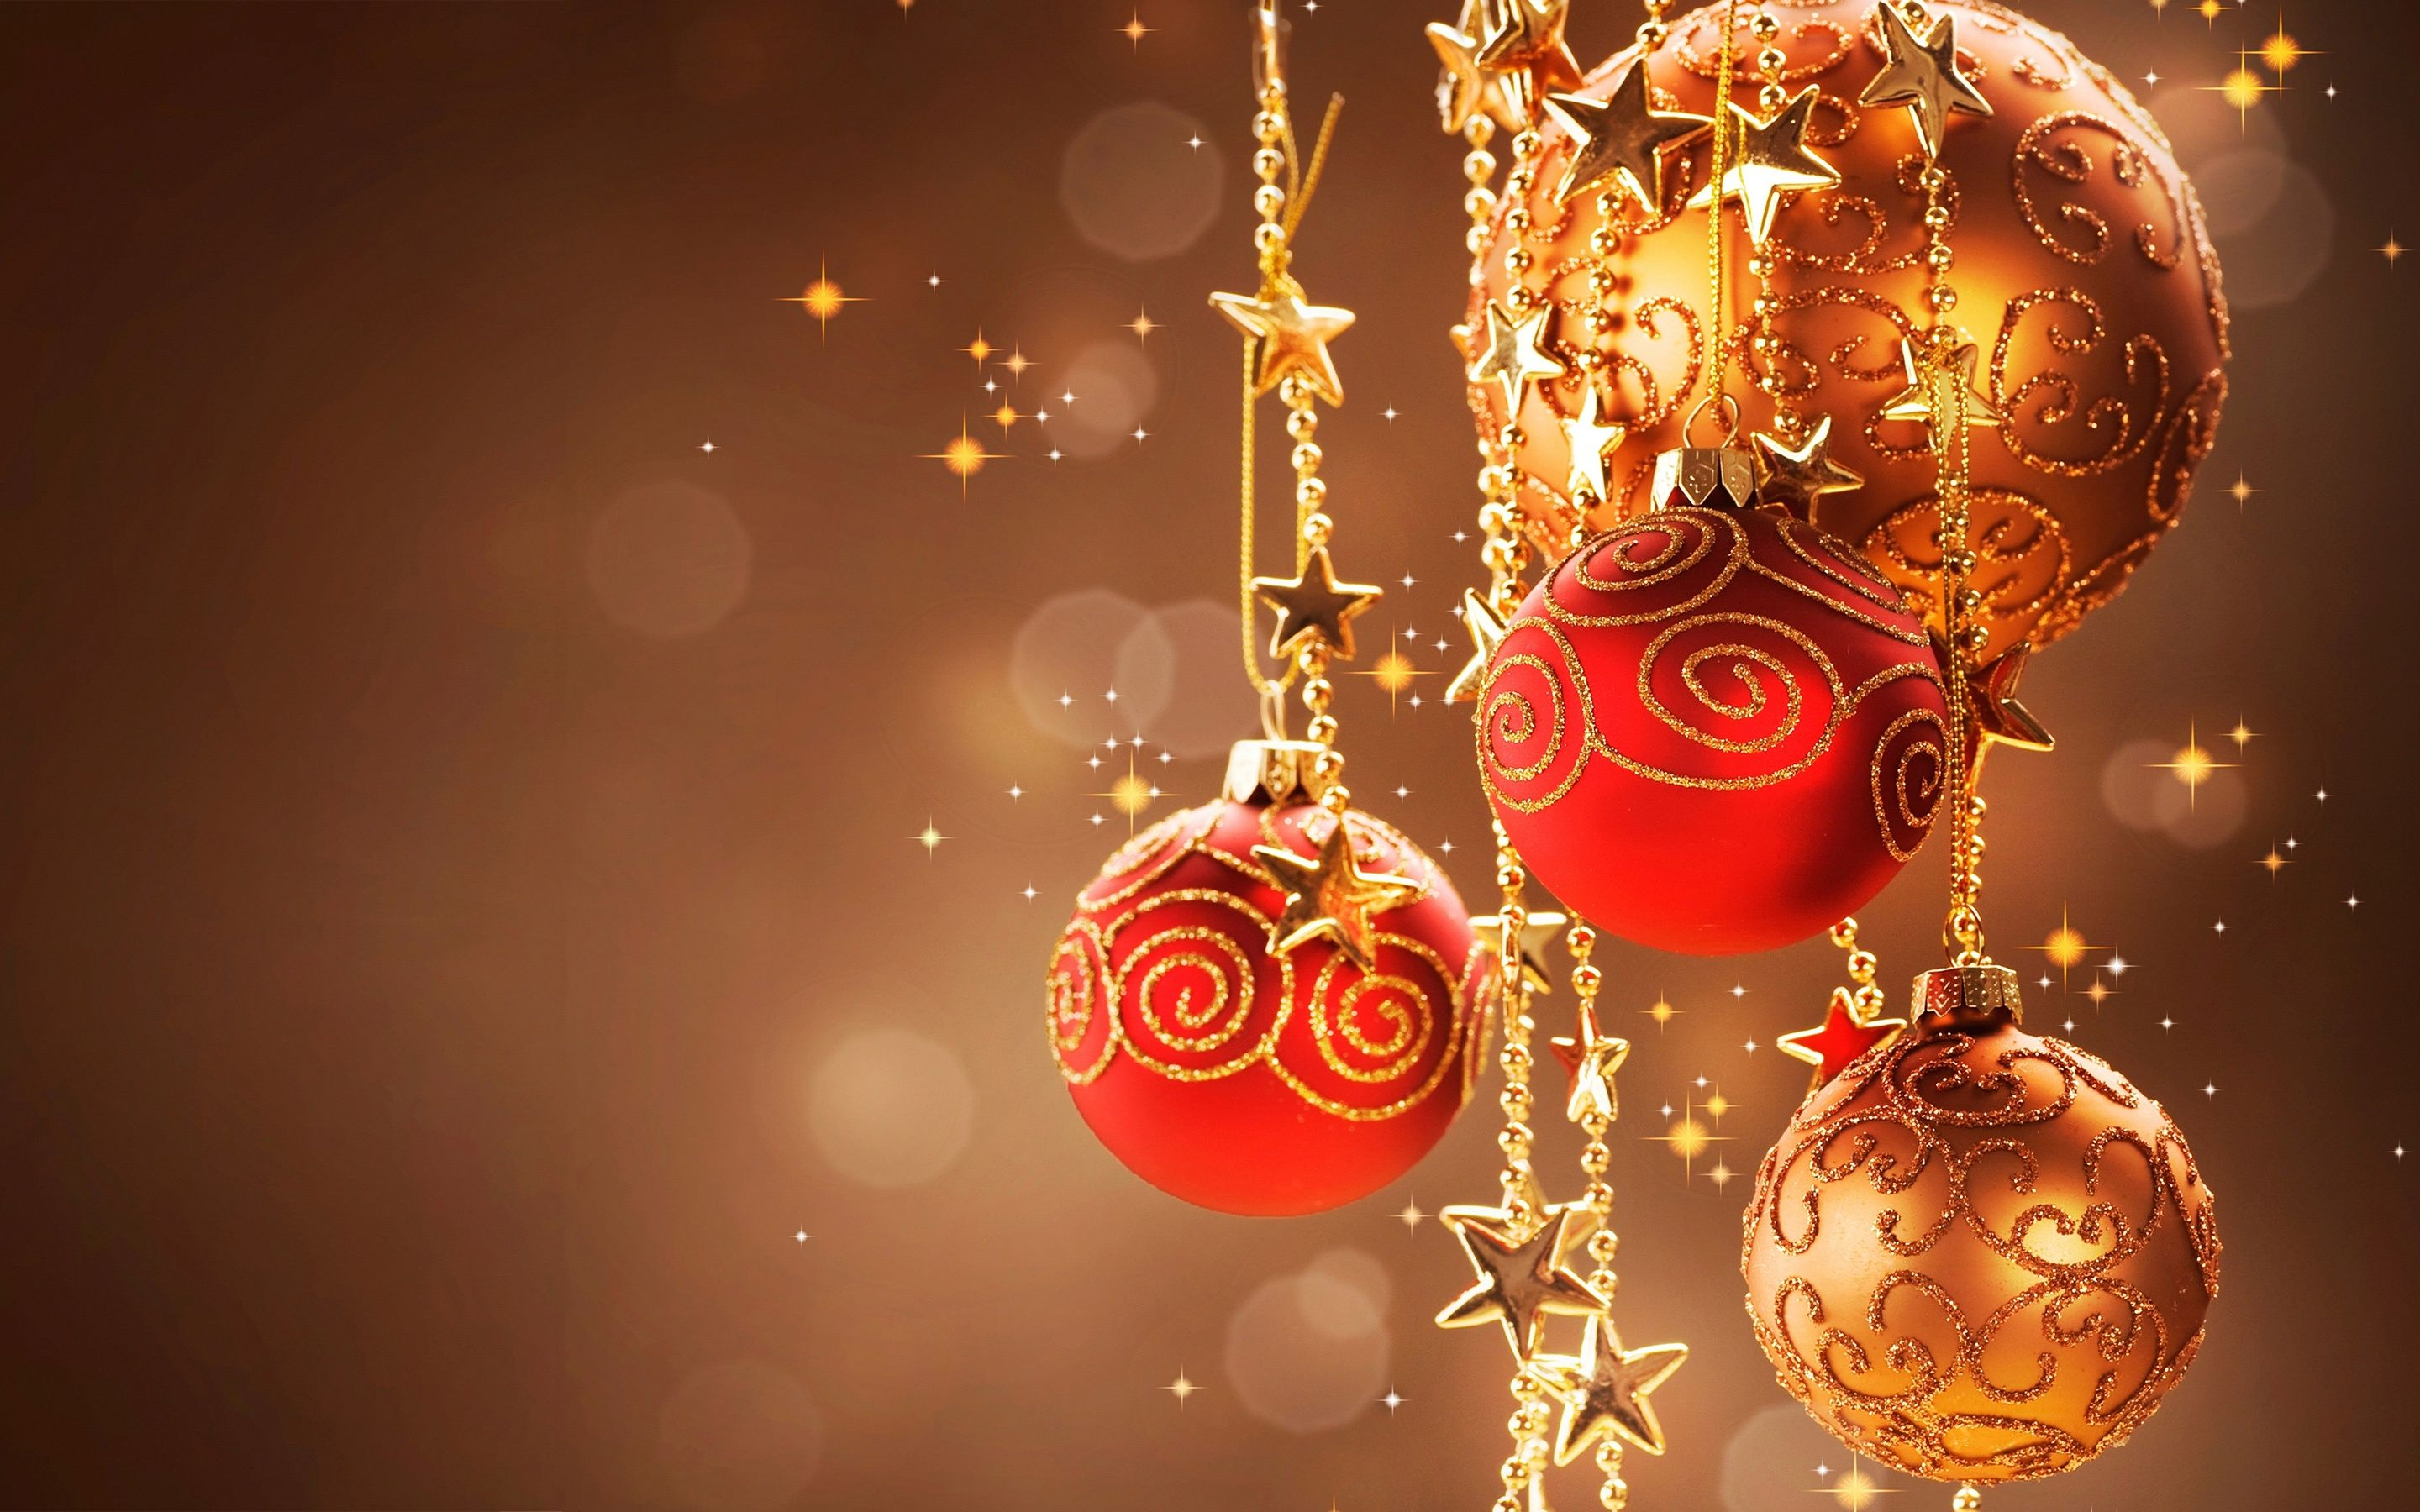 We Have The Best Collection Of Merry Christmas Songs 2016 For You To Sing  On The Occasion And Get Blessings From Jesus Christ. Singing Songs On  Christmas ...